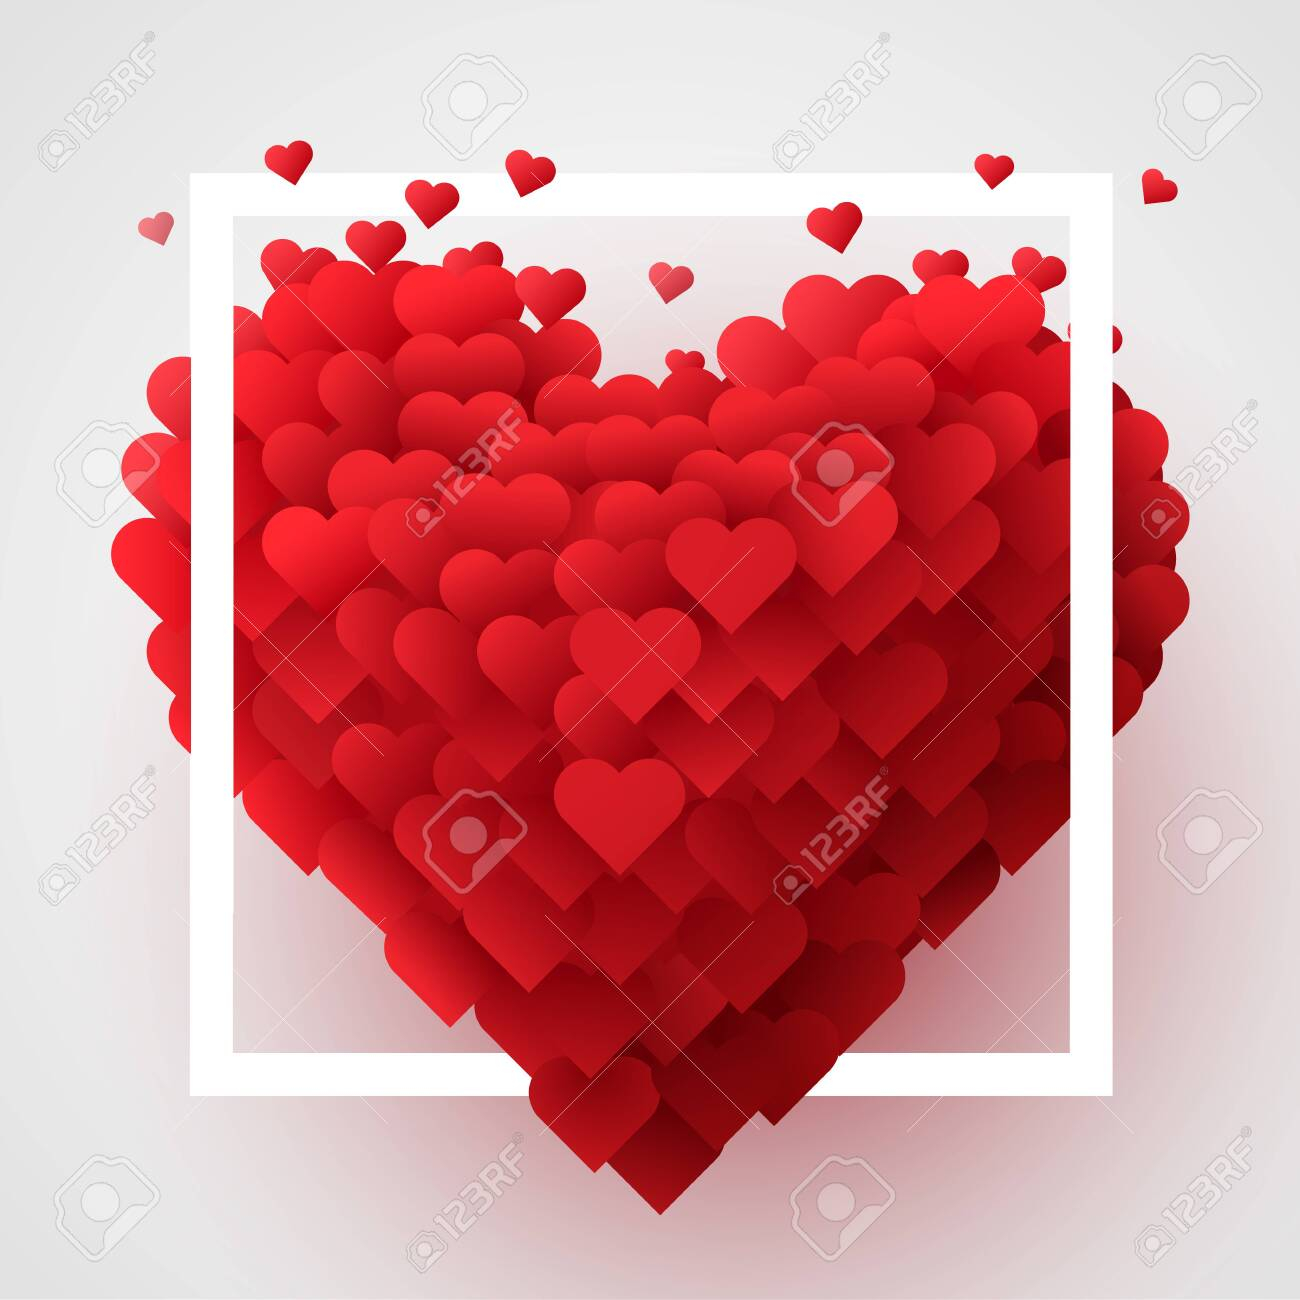 photo stock vector valentines day background with red 3d hearts cute love banner or greeting card place for text happy